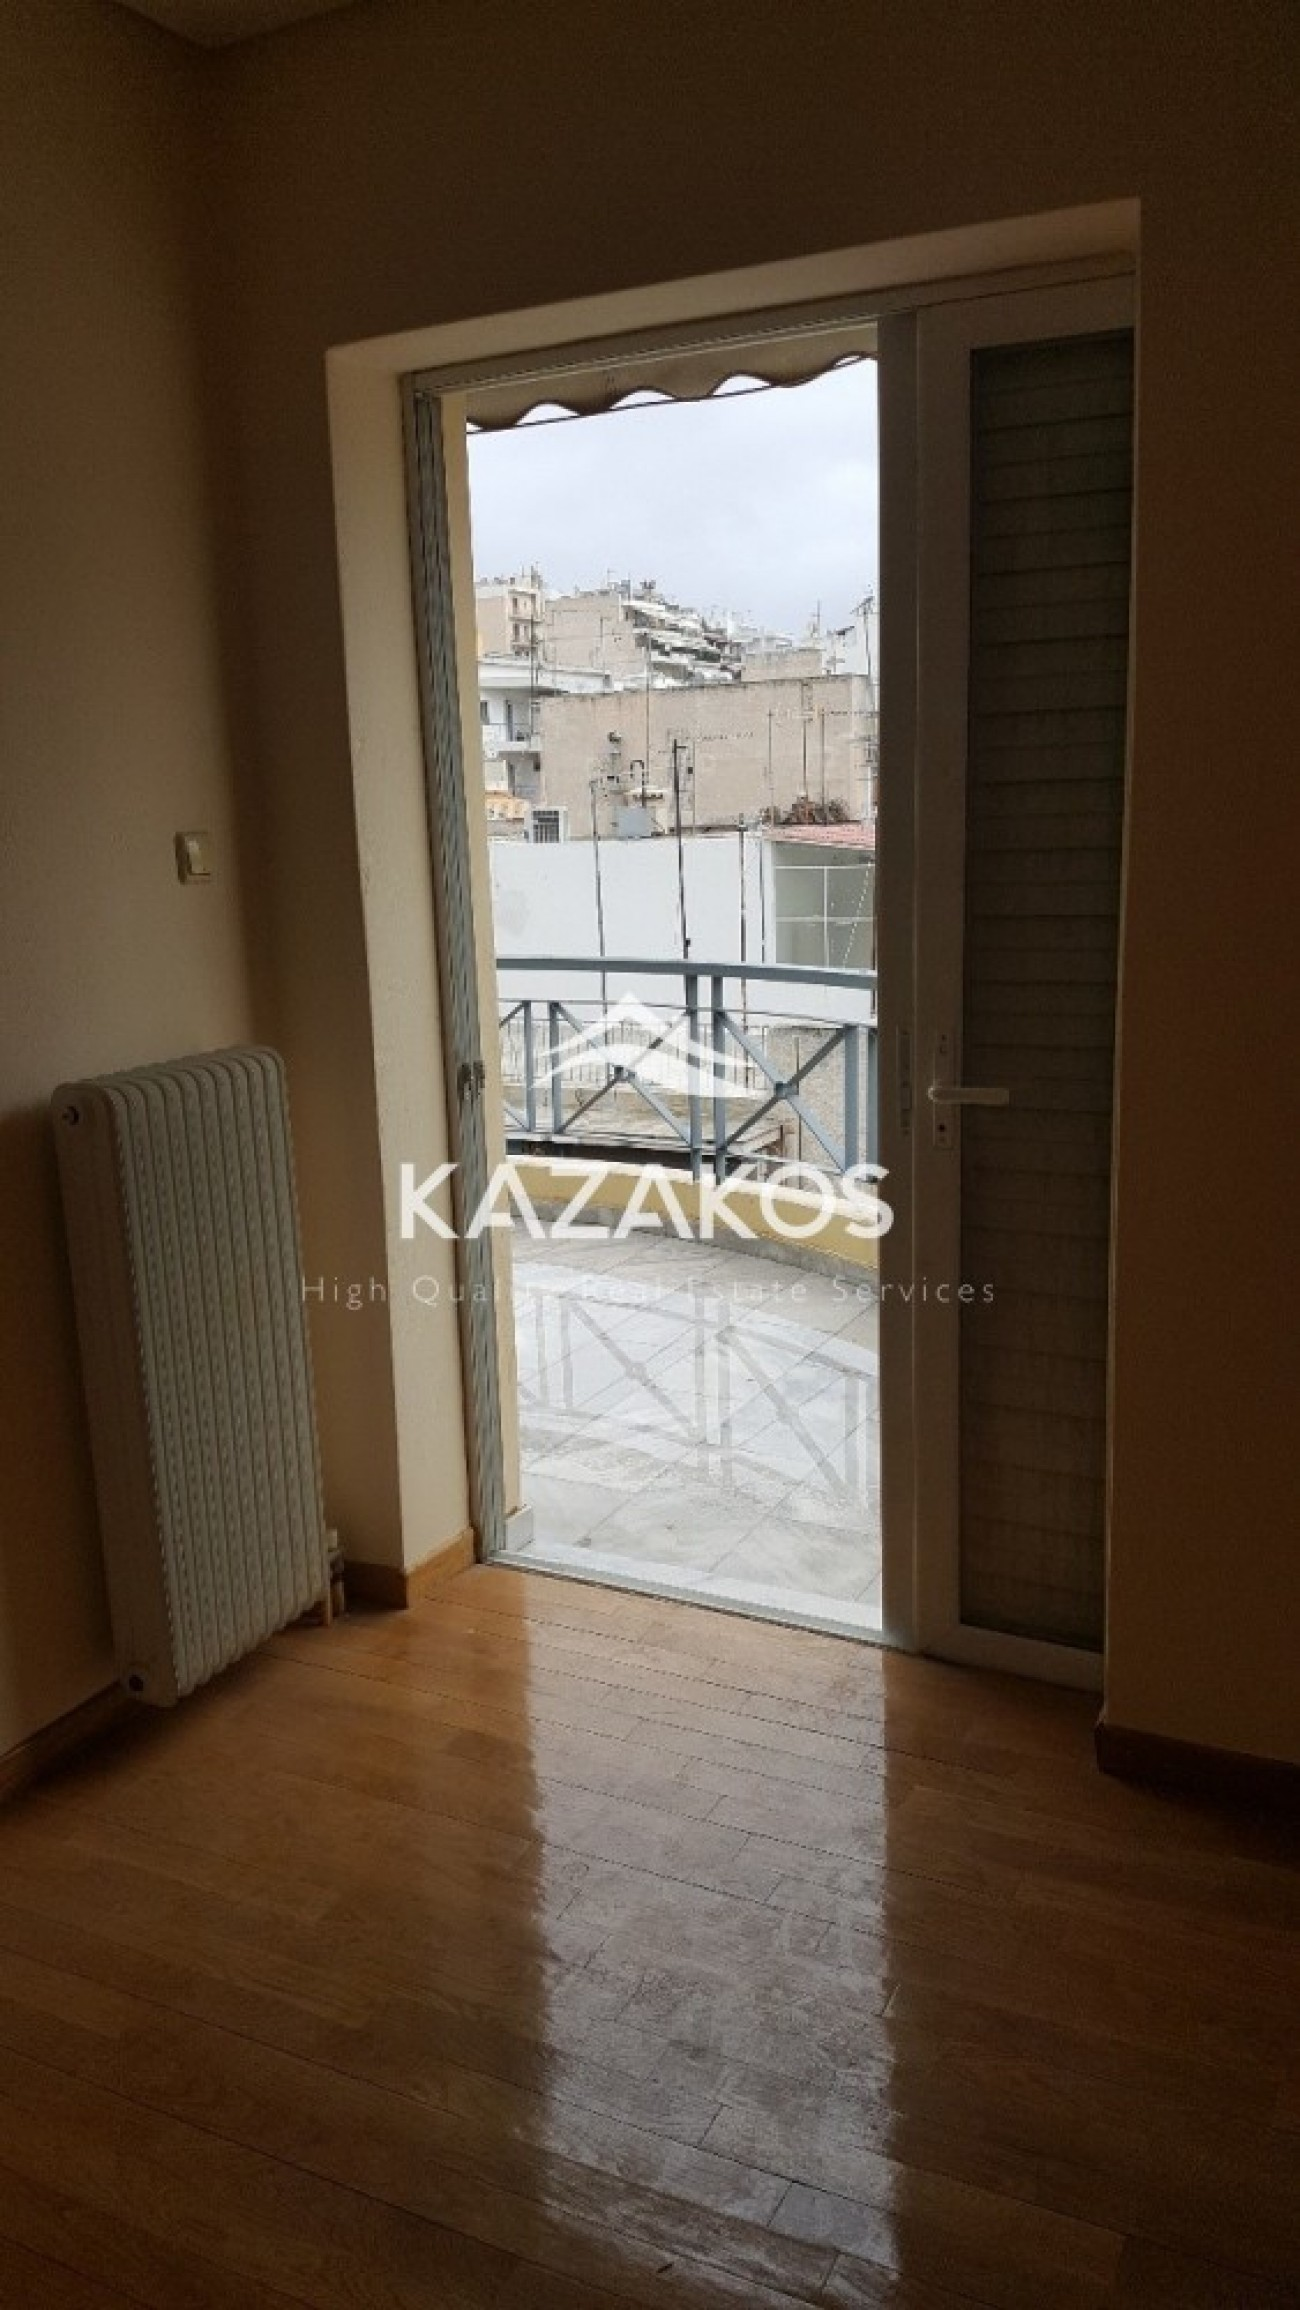 Apartment for Sale in A' Cemetery, Athens City Center, Greece